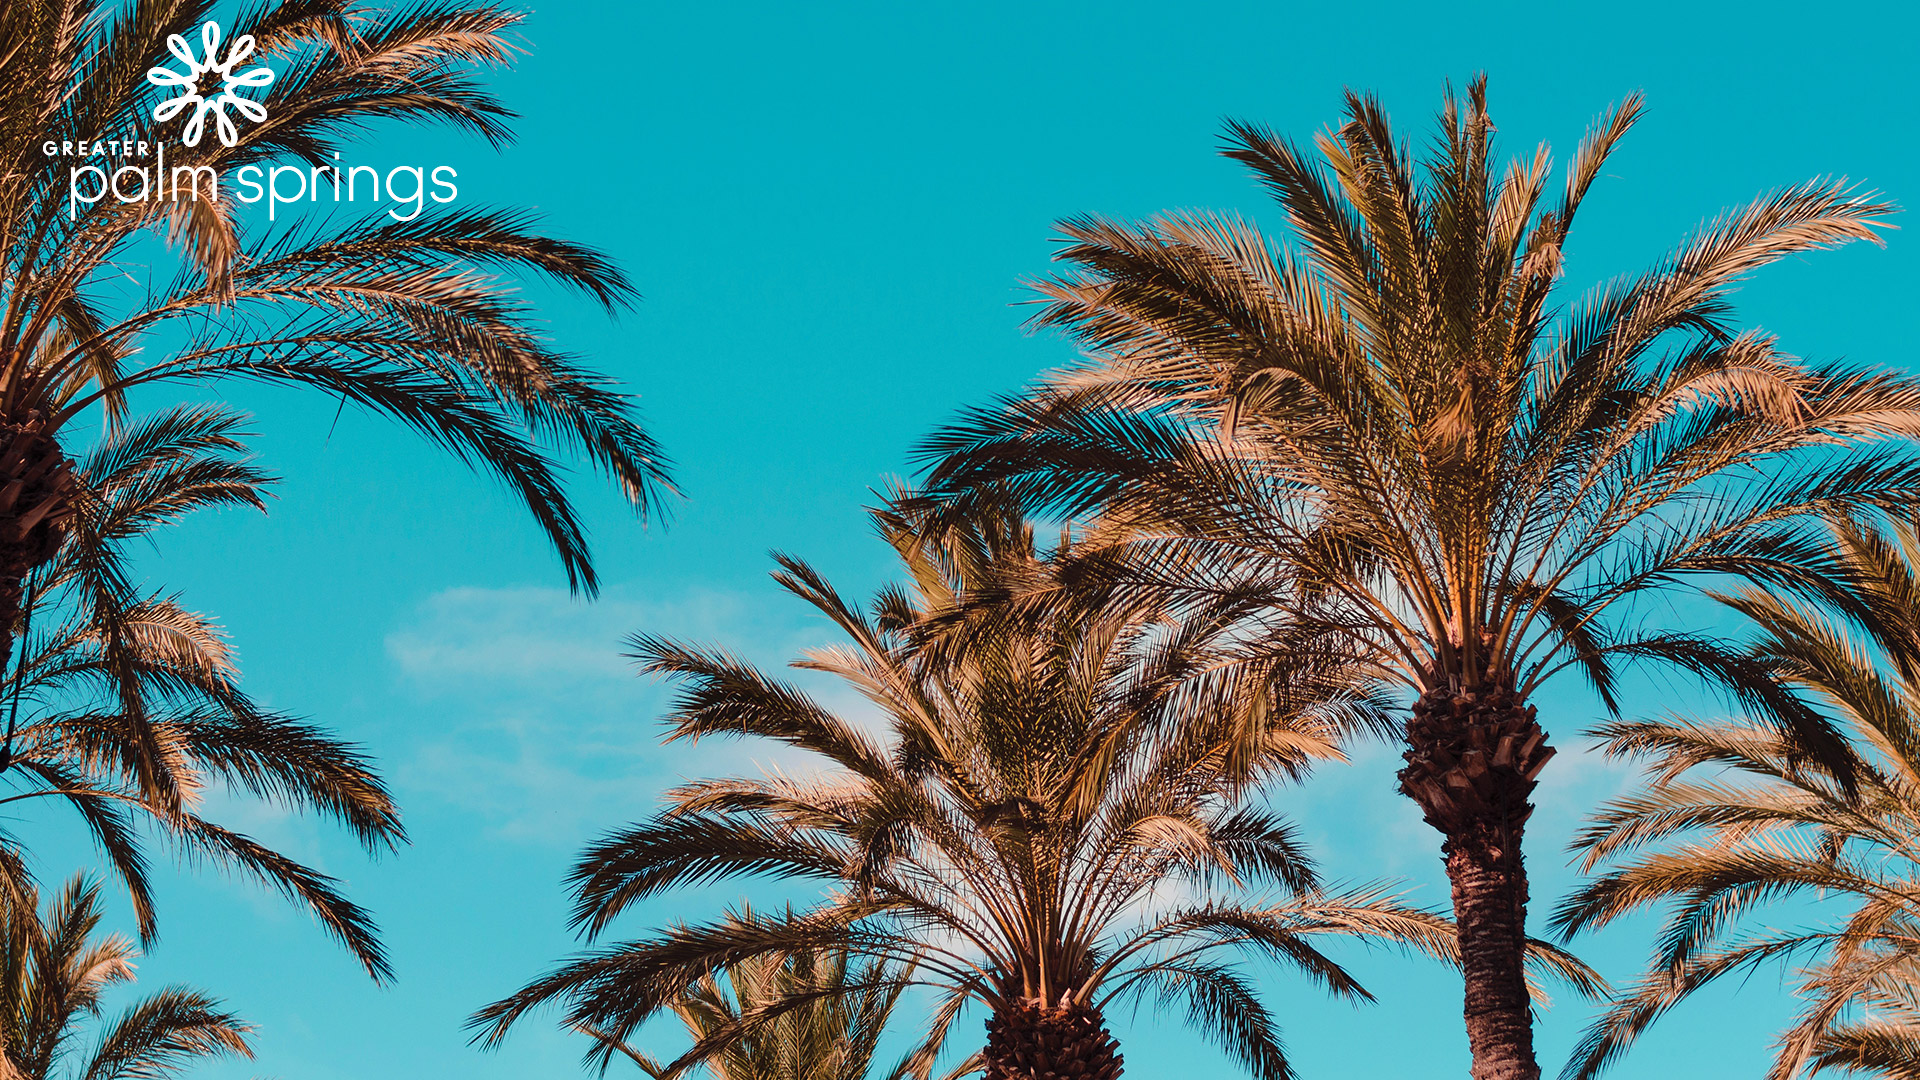 Download Scenic Zoom Backgrounds From Greater Palm Springs